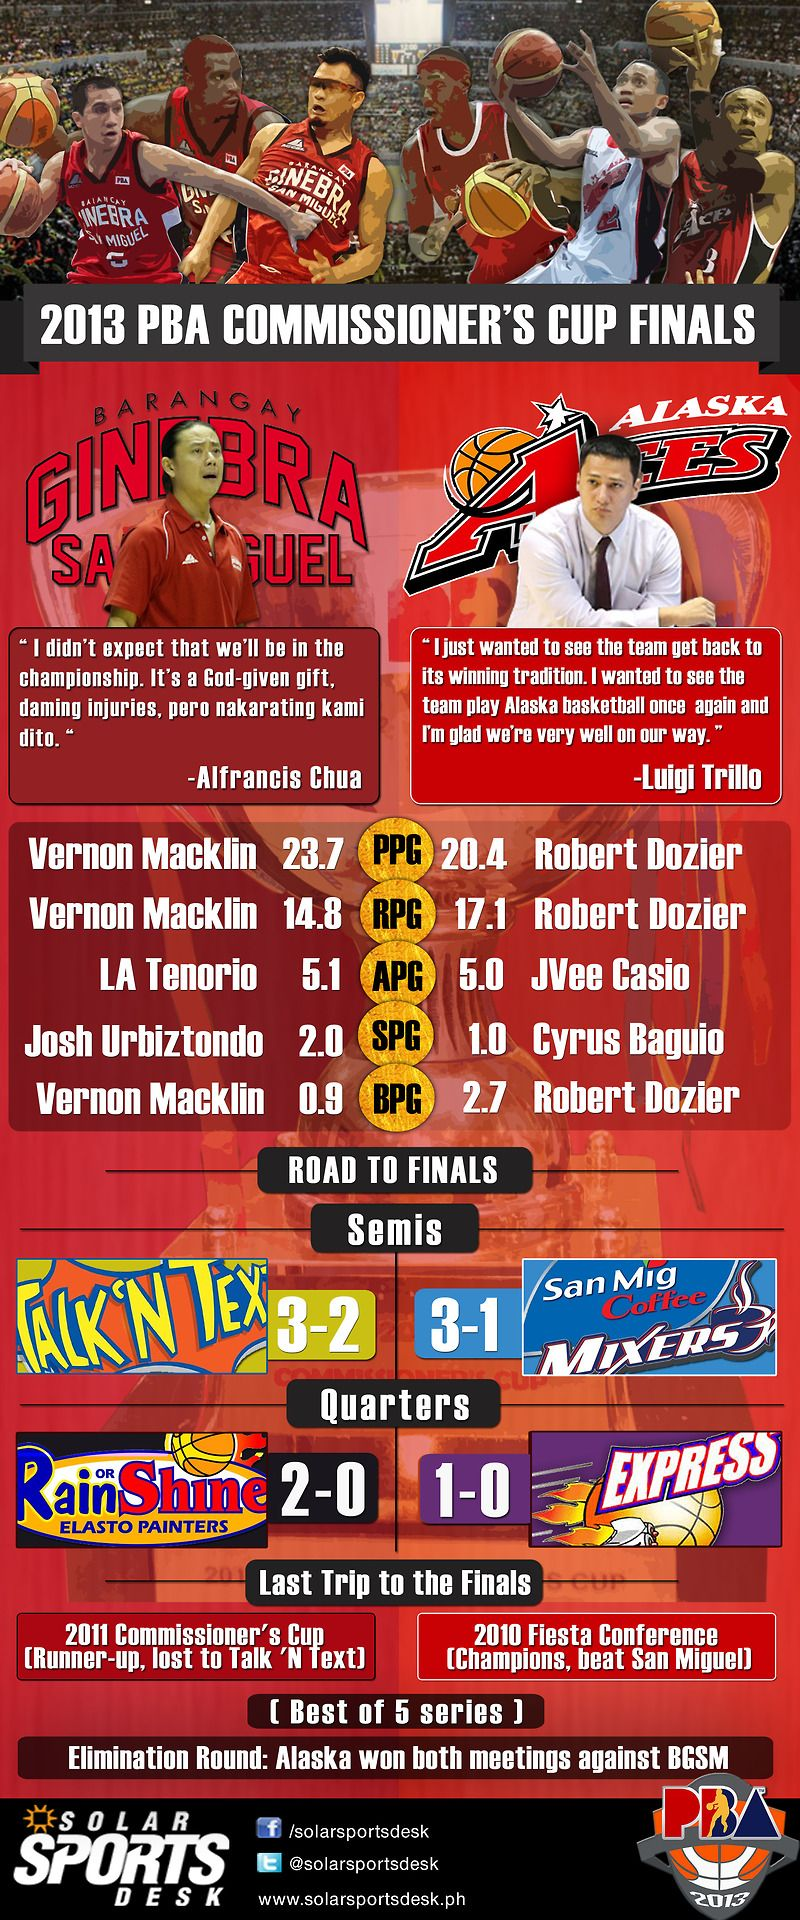 PBA Commissioner's Cup Finals Preview: Alaska vs Ginebra | solarsportsdesk.ph